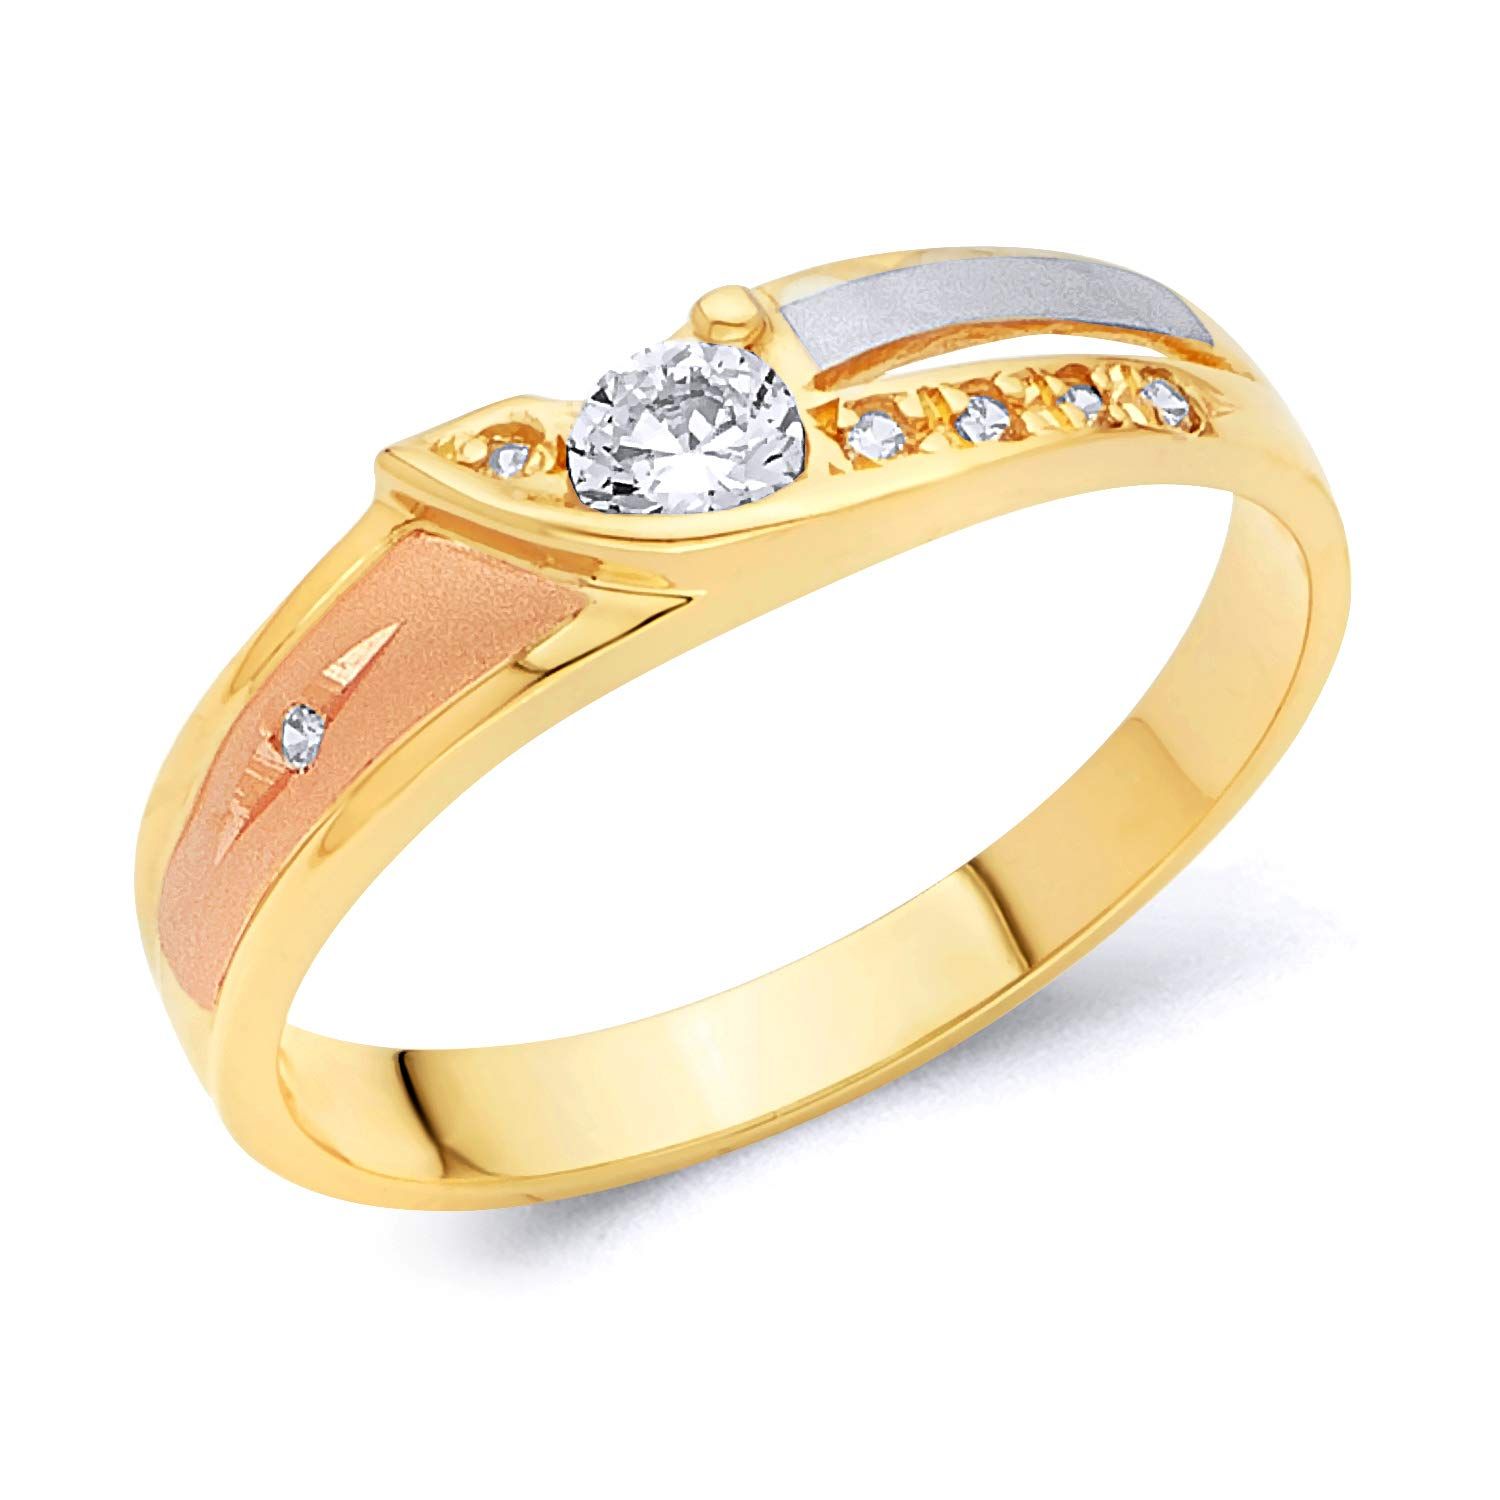 Wellingsale Mens 14K 3 Tri Color White Yellow and Rose//Pink Gold Diamond Cut CZ Cubic Zirconia Wedding Ring Band